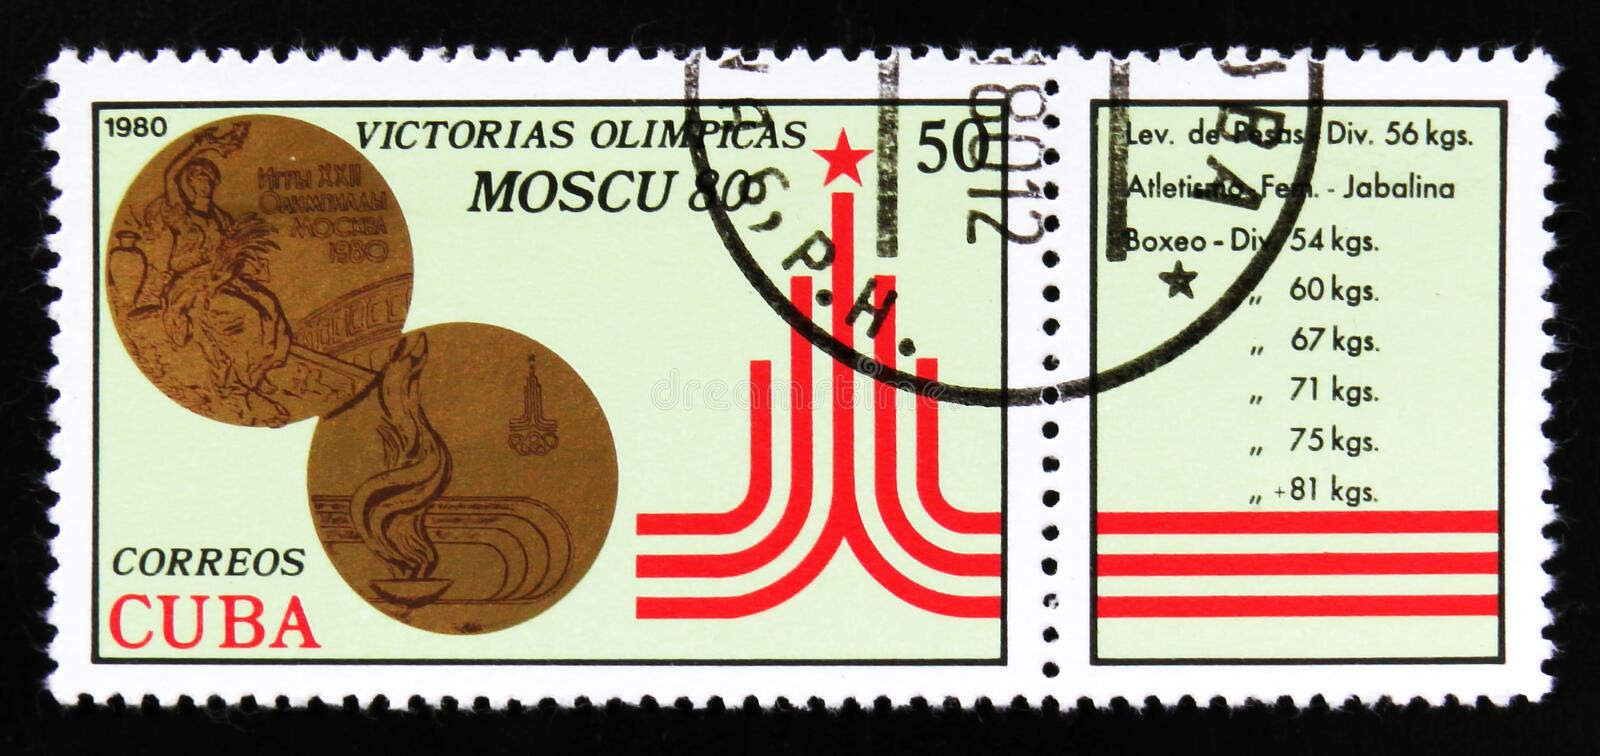 Cuba shows Bronze medals, series Victory of Cuban Athletes at the 1980 Summer Olympics in Moscow, circa 1980. MOSCOW, RUSSIA - JUNE 26, 2017: A stamp printed in royalty free stock photography